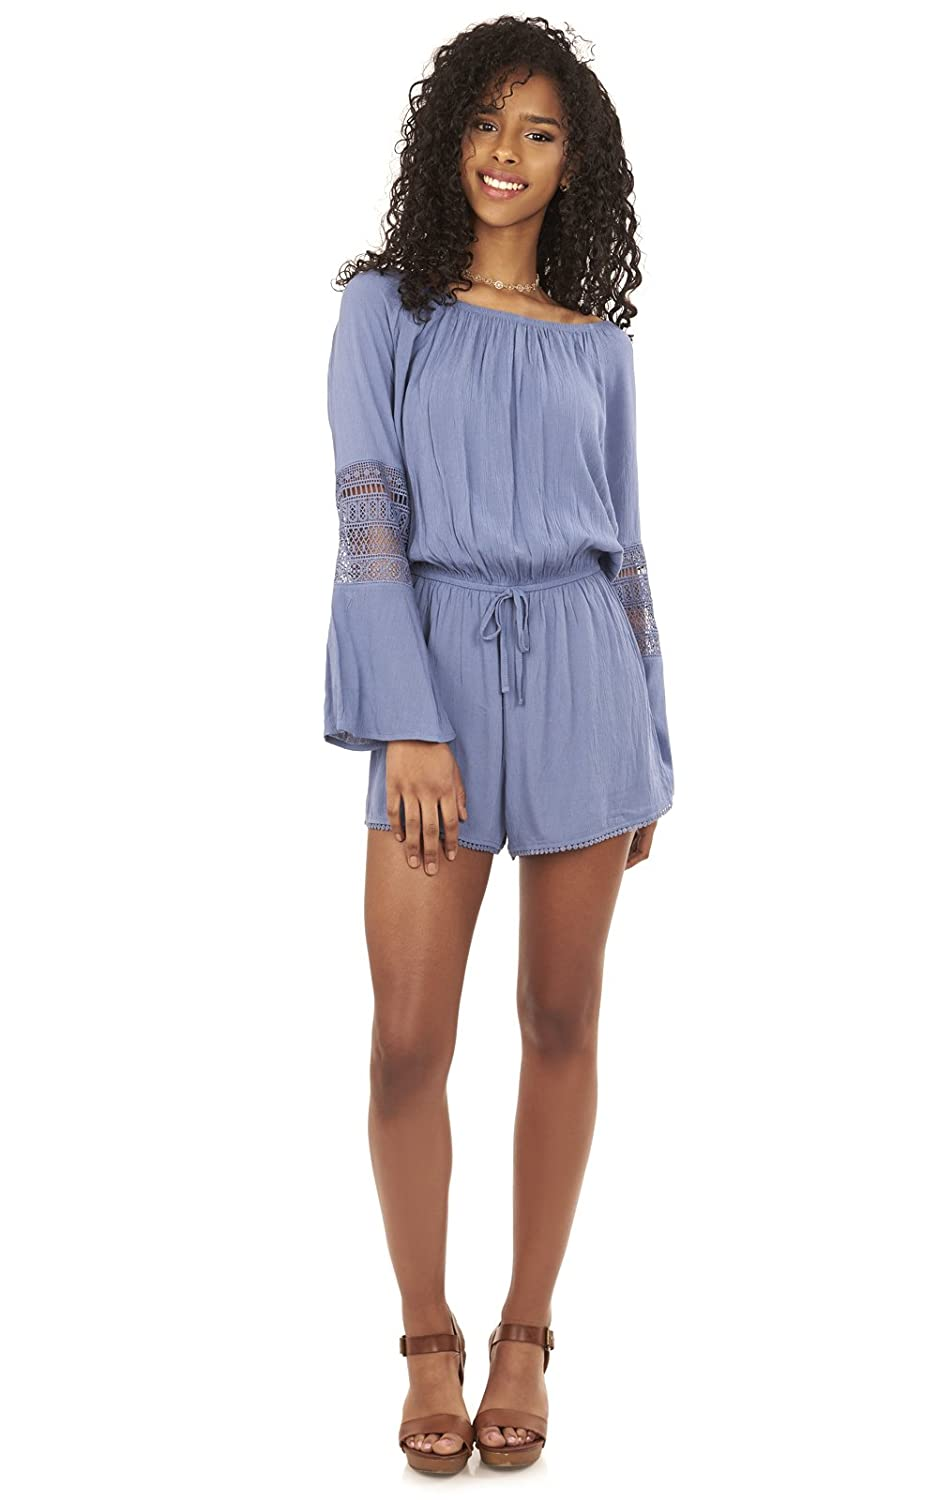 e85f01fe87d2 Amazon.com  WallFlower Women s Juniors Off The Shoulder Romper with  Crochet  Clothing